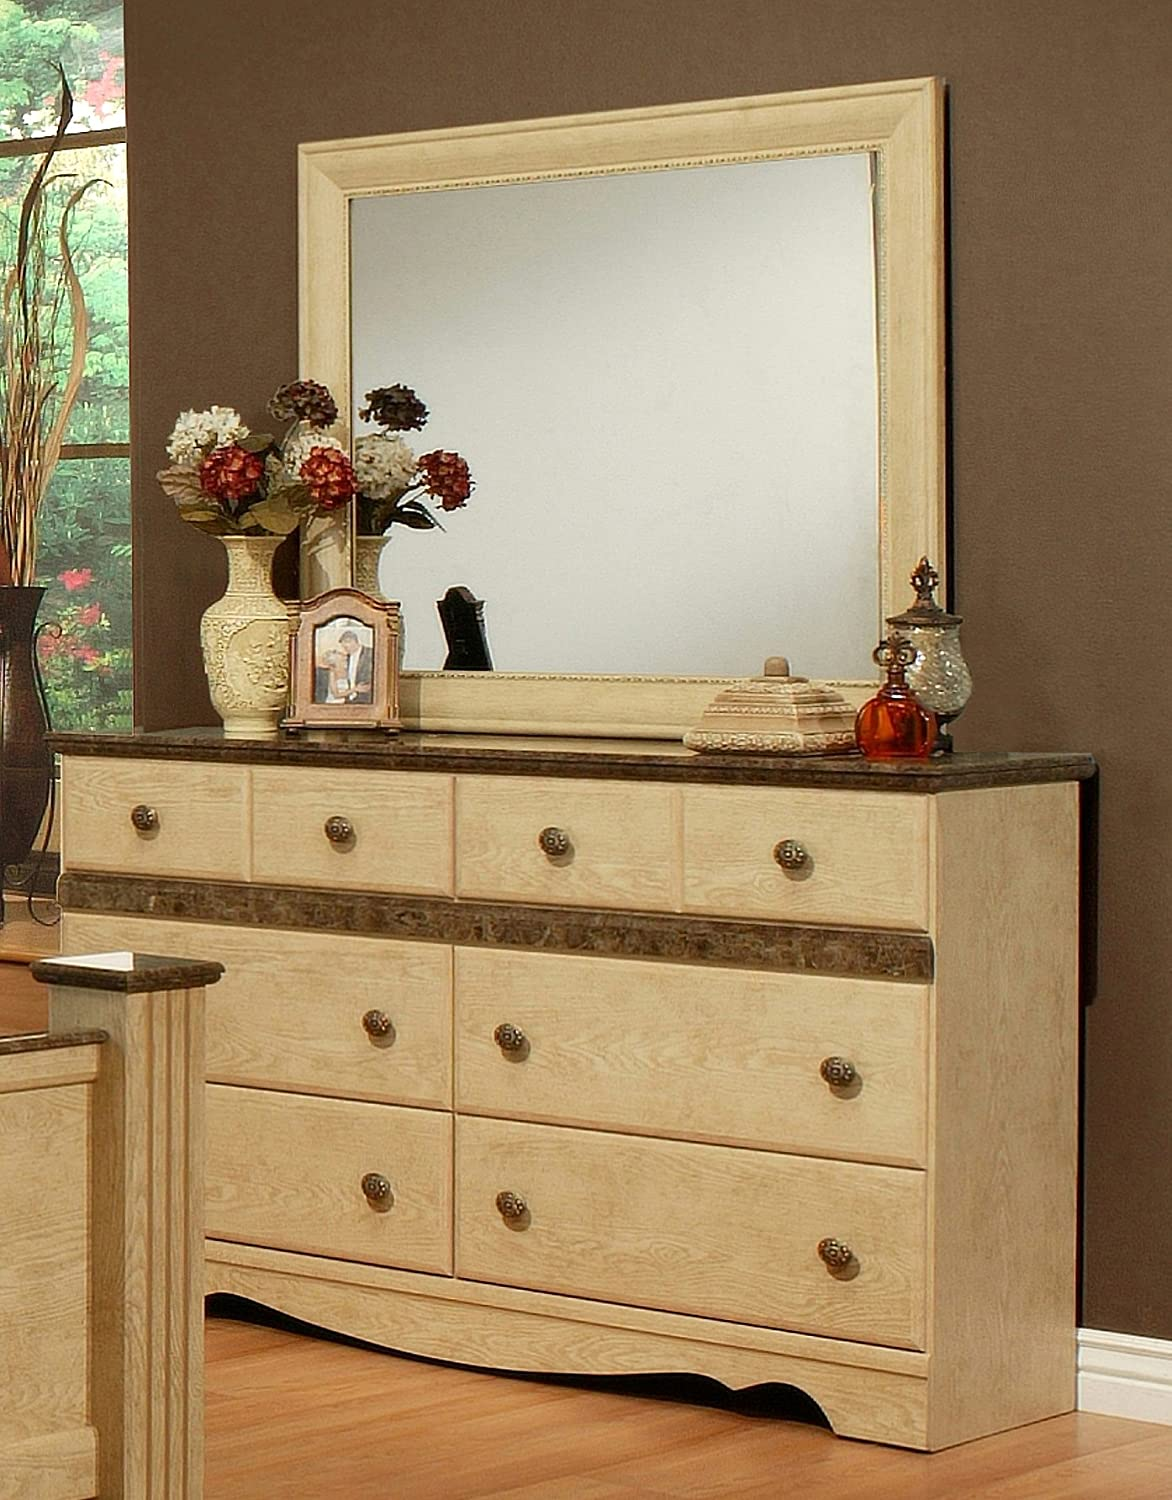 Sandberg Furniture Casa Blanca 6-Drawer Dresser with Mirror